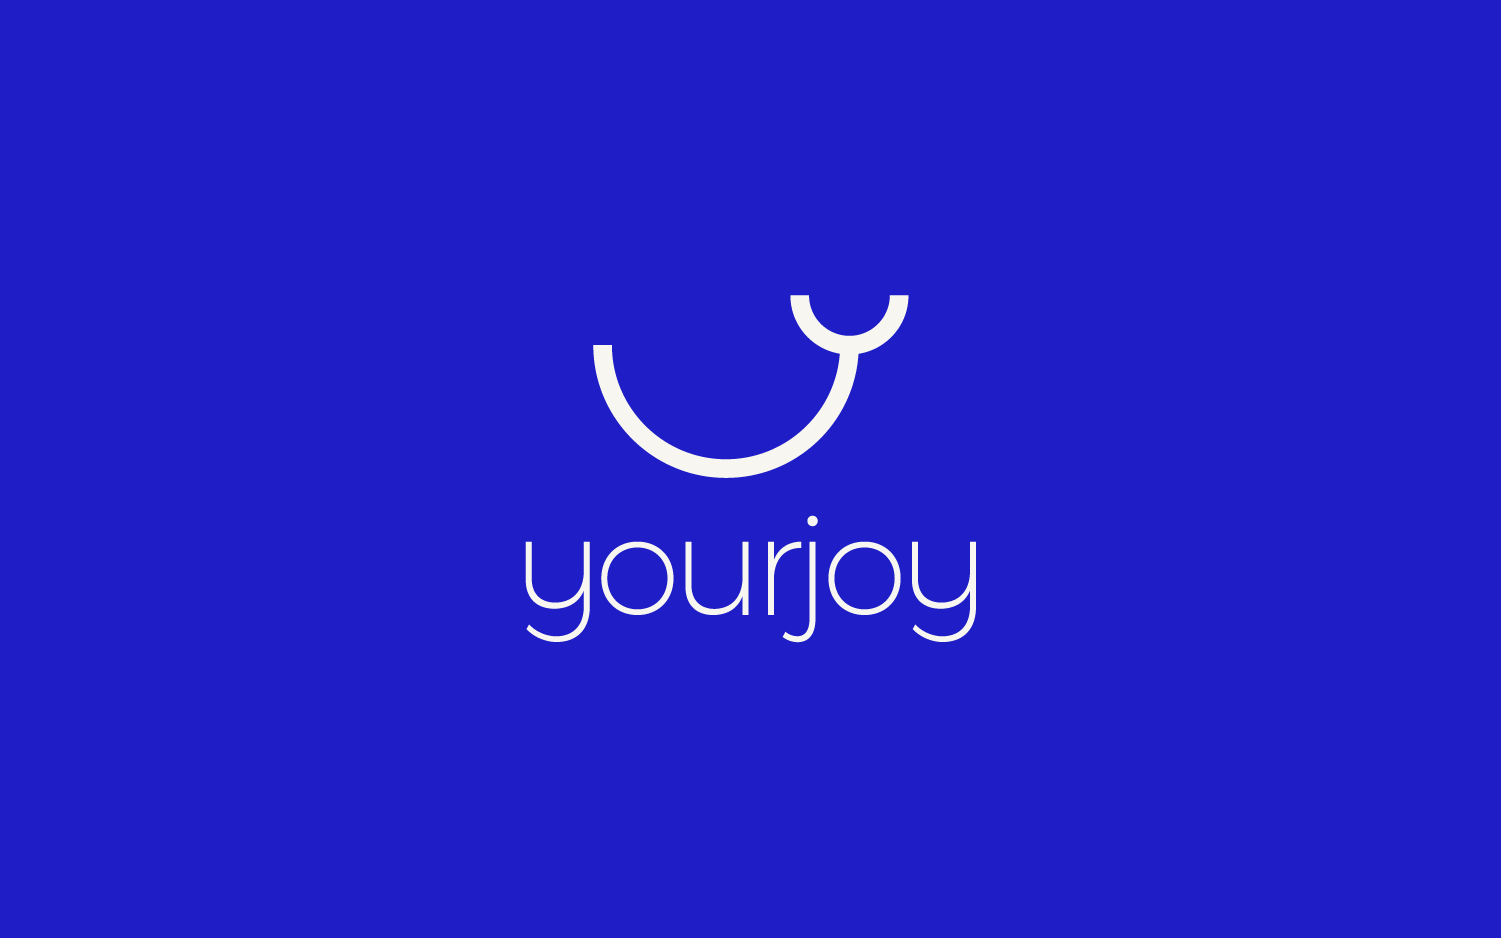 yourjoy logo design presentation